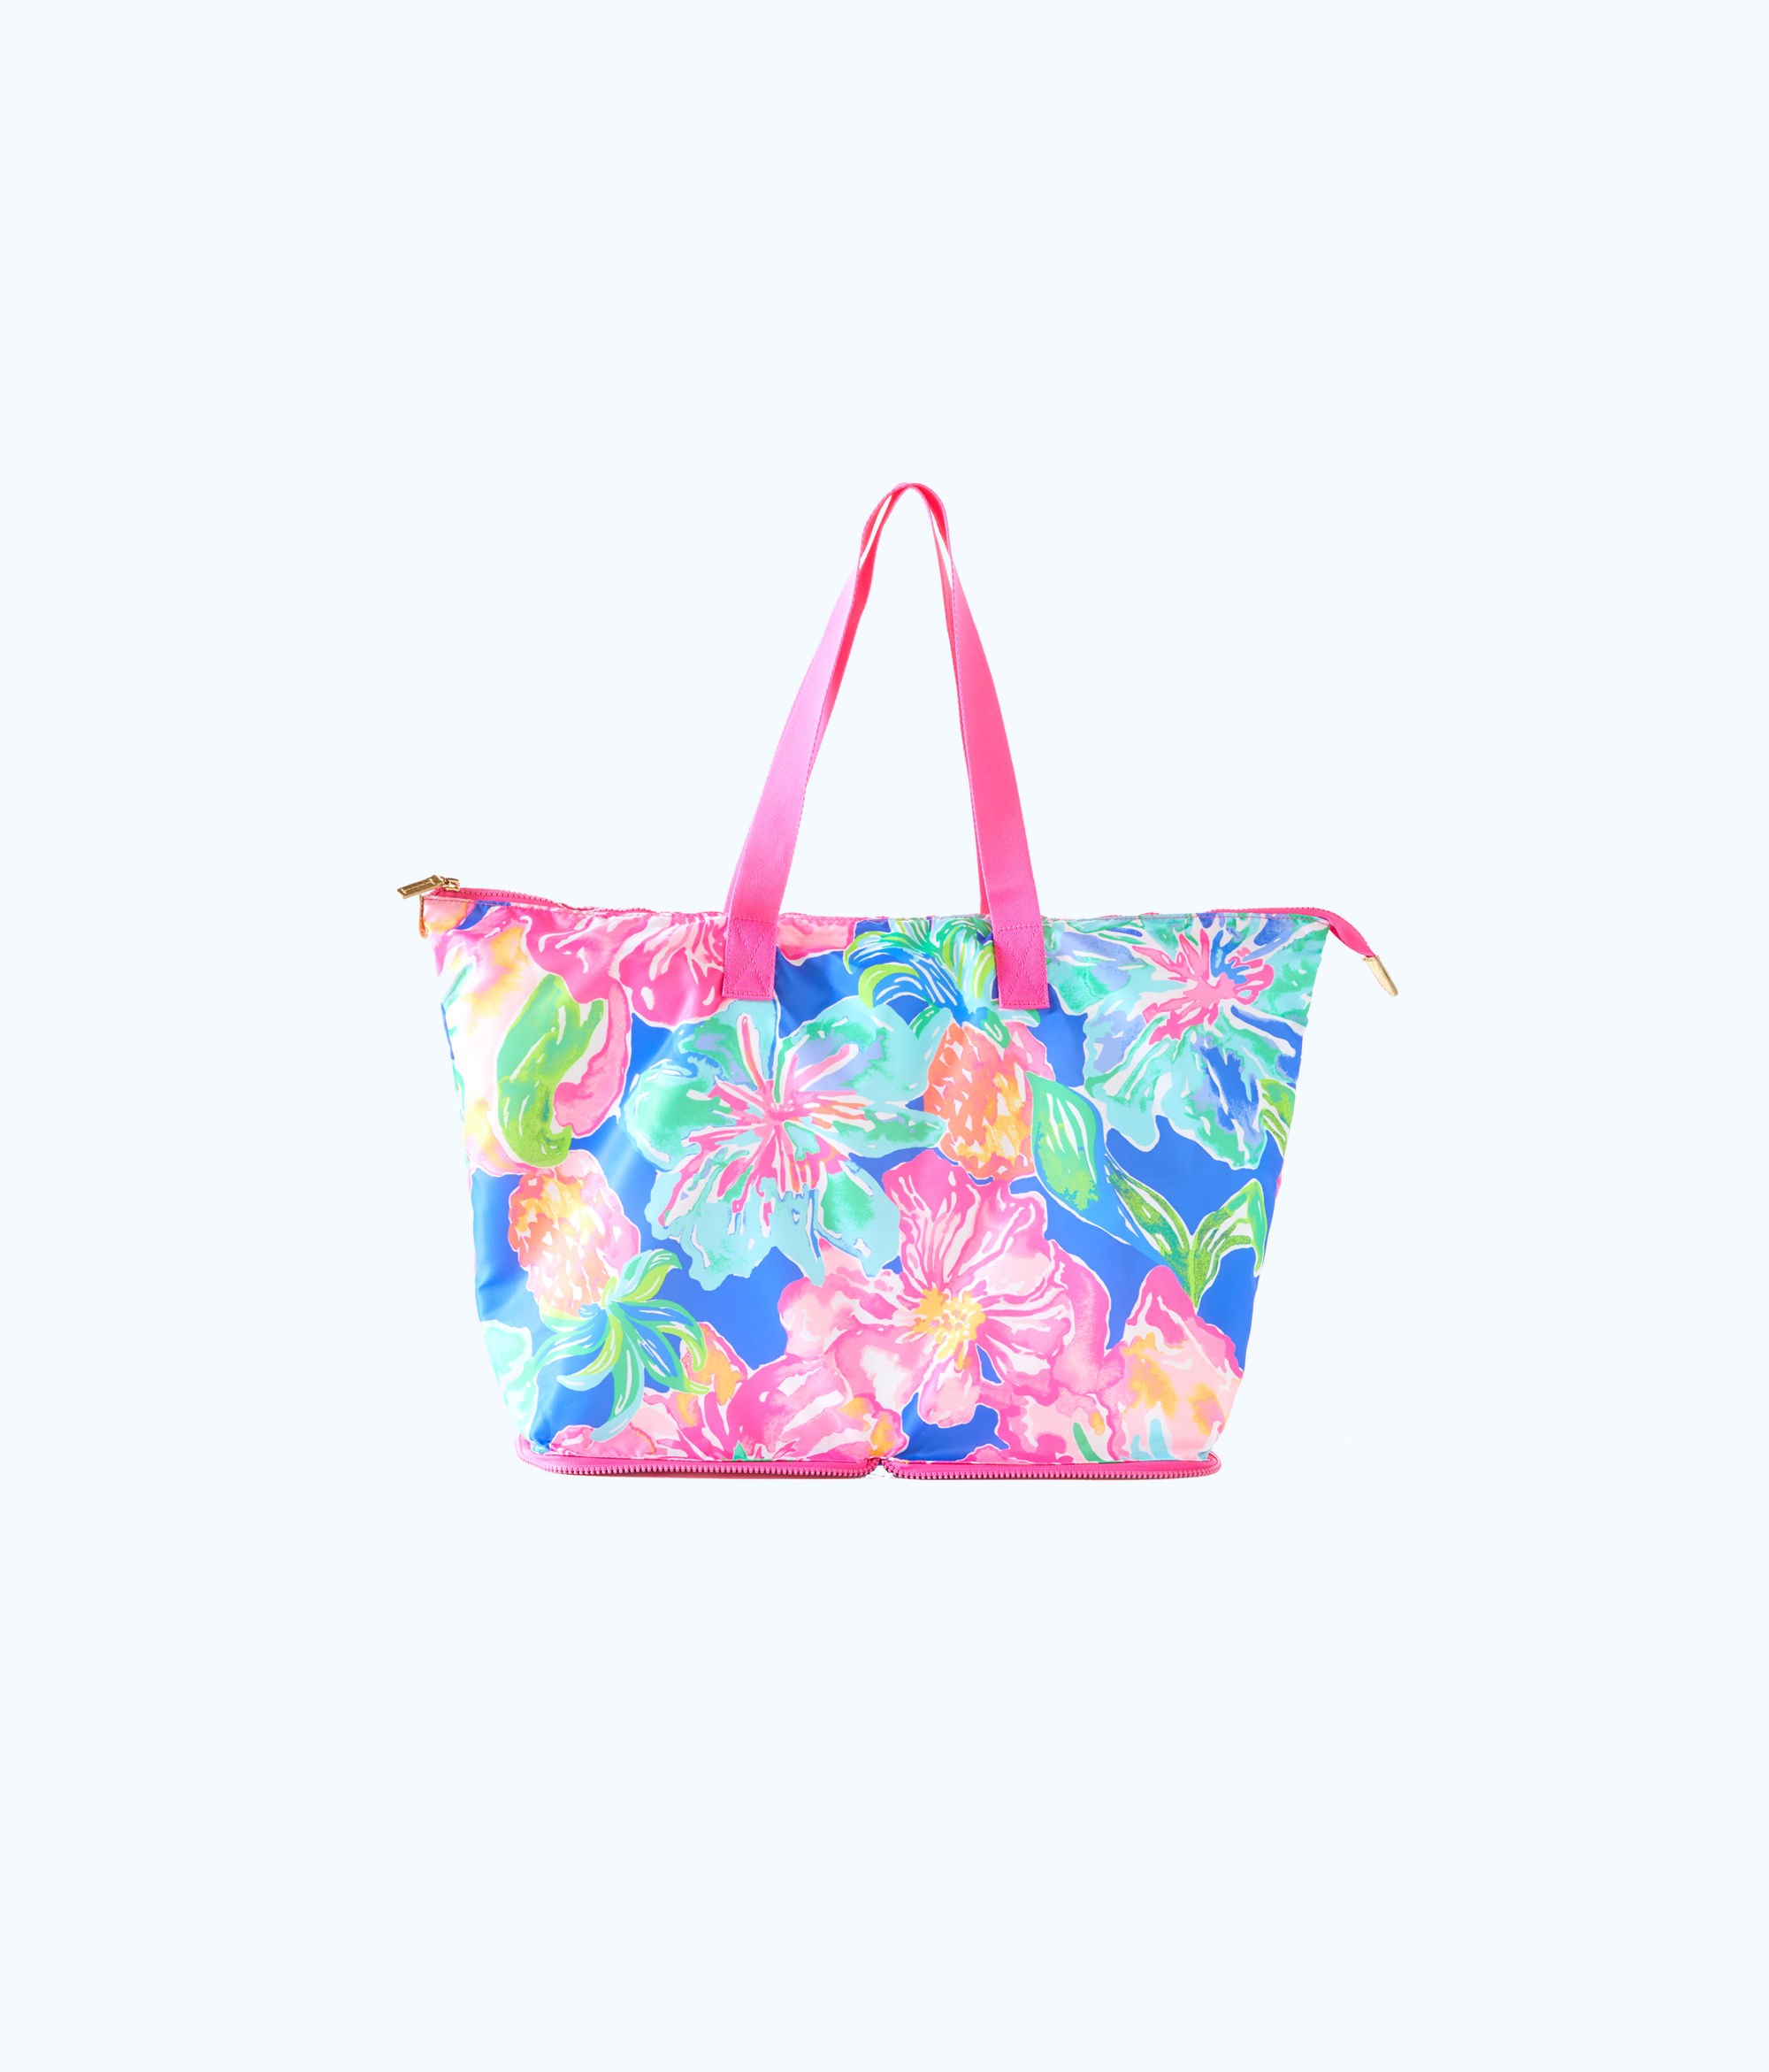 005840c797 Lilly Pulitzer Getaway Packable Tote - Beckon Blue Jungle Utopia 1 ...